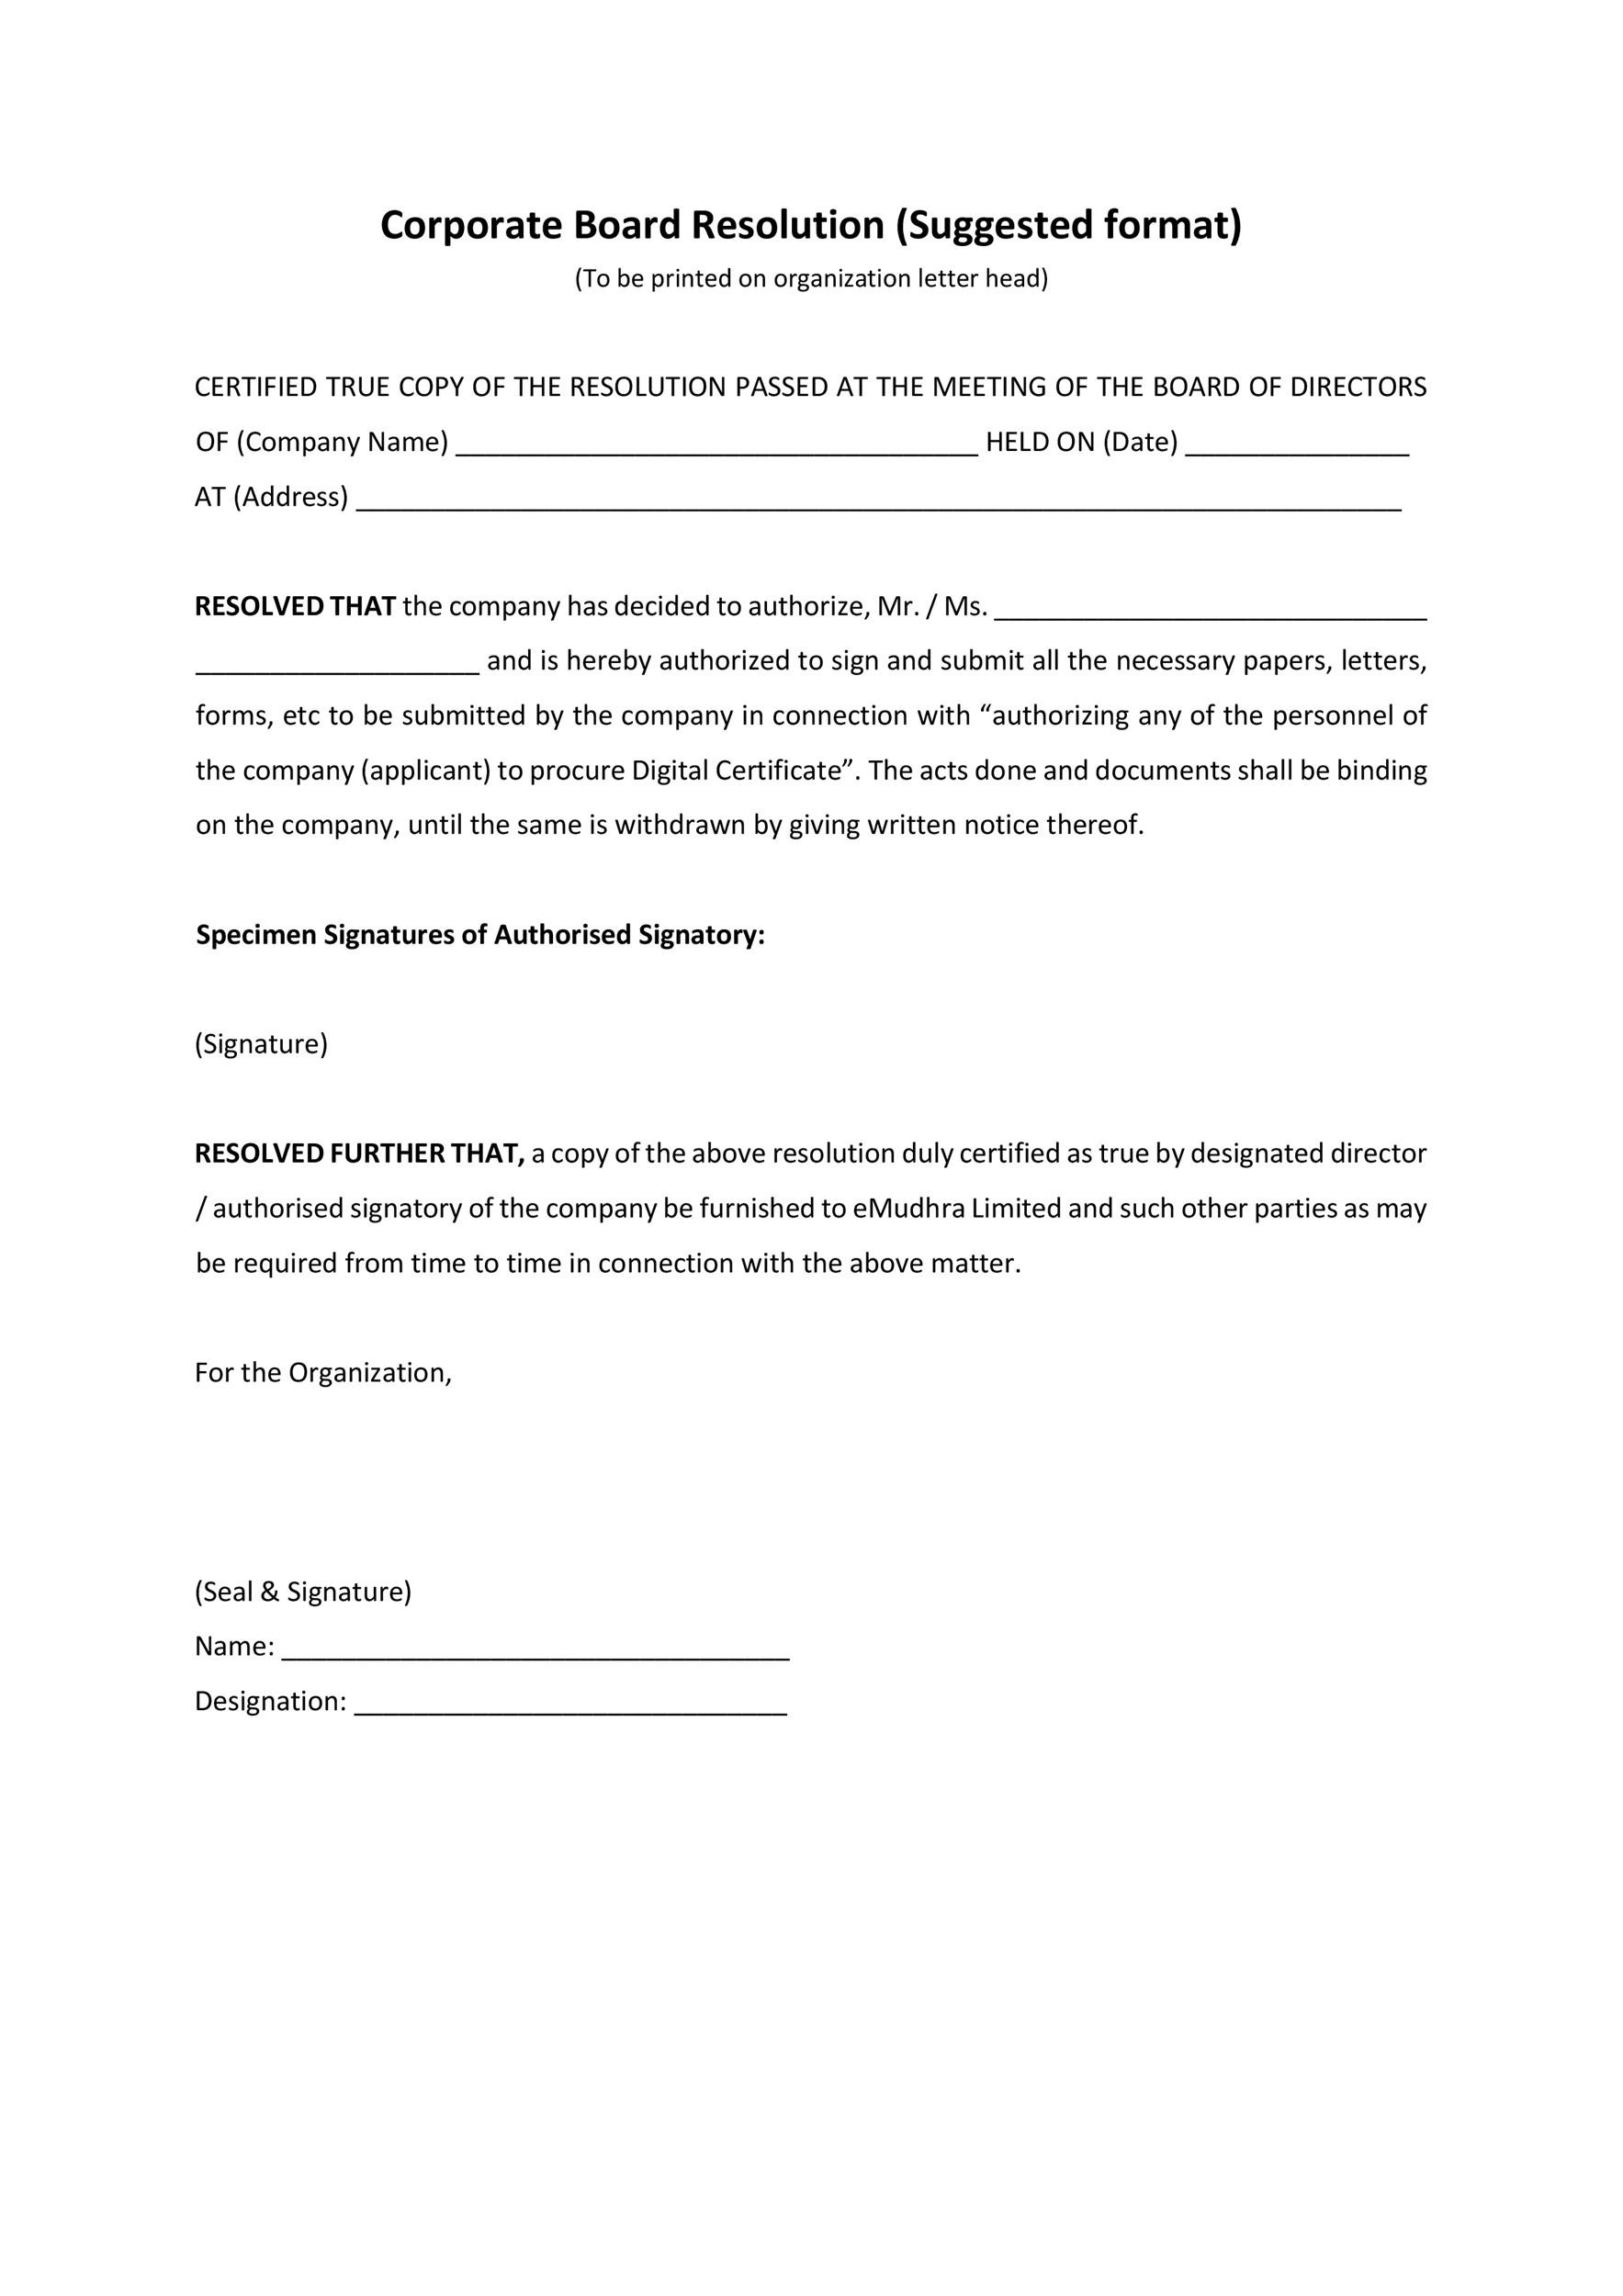 Board Resolution Authorized Signatory Template from templatelab.com